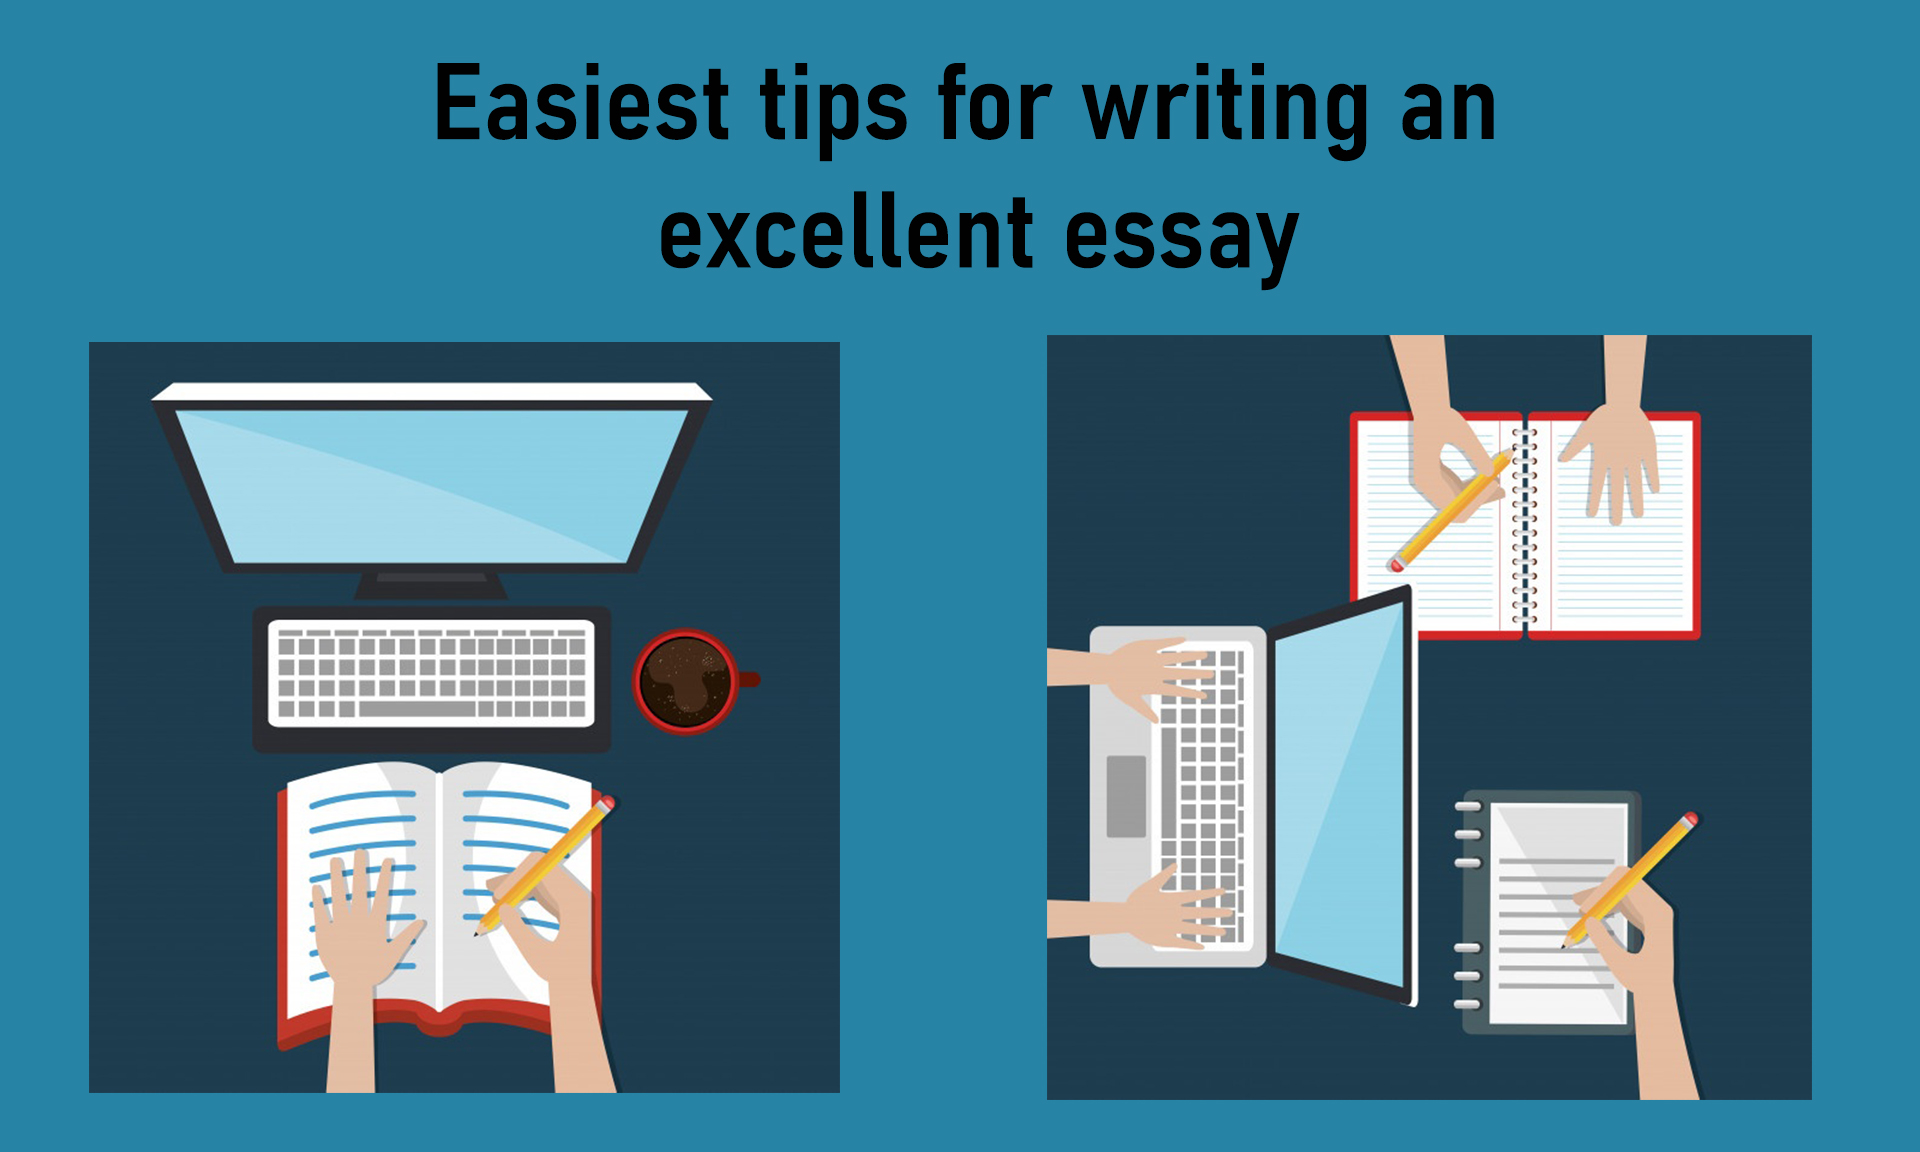 easiest-tips-for-writing-an-excellent-essay.